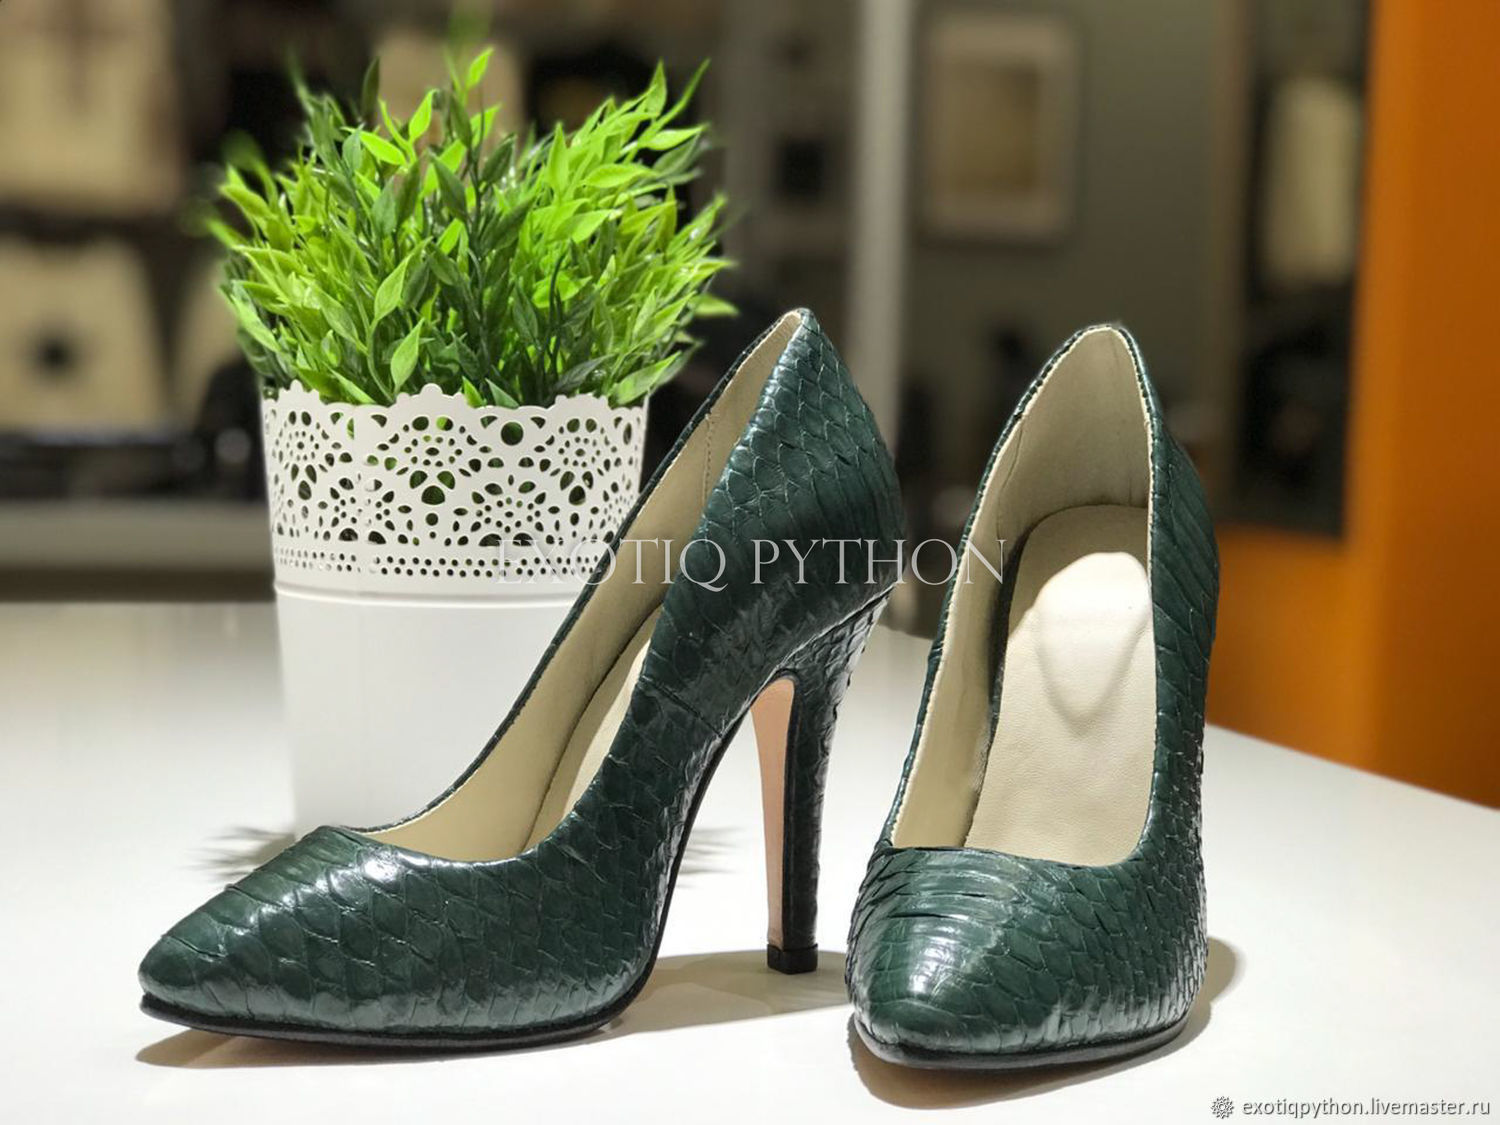 Shoes from Python, Shoes, Moscow,  Фото №1